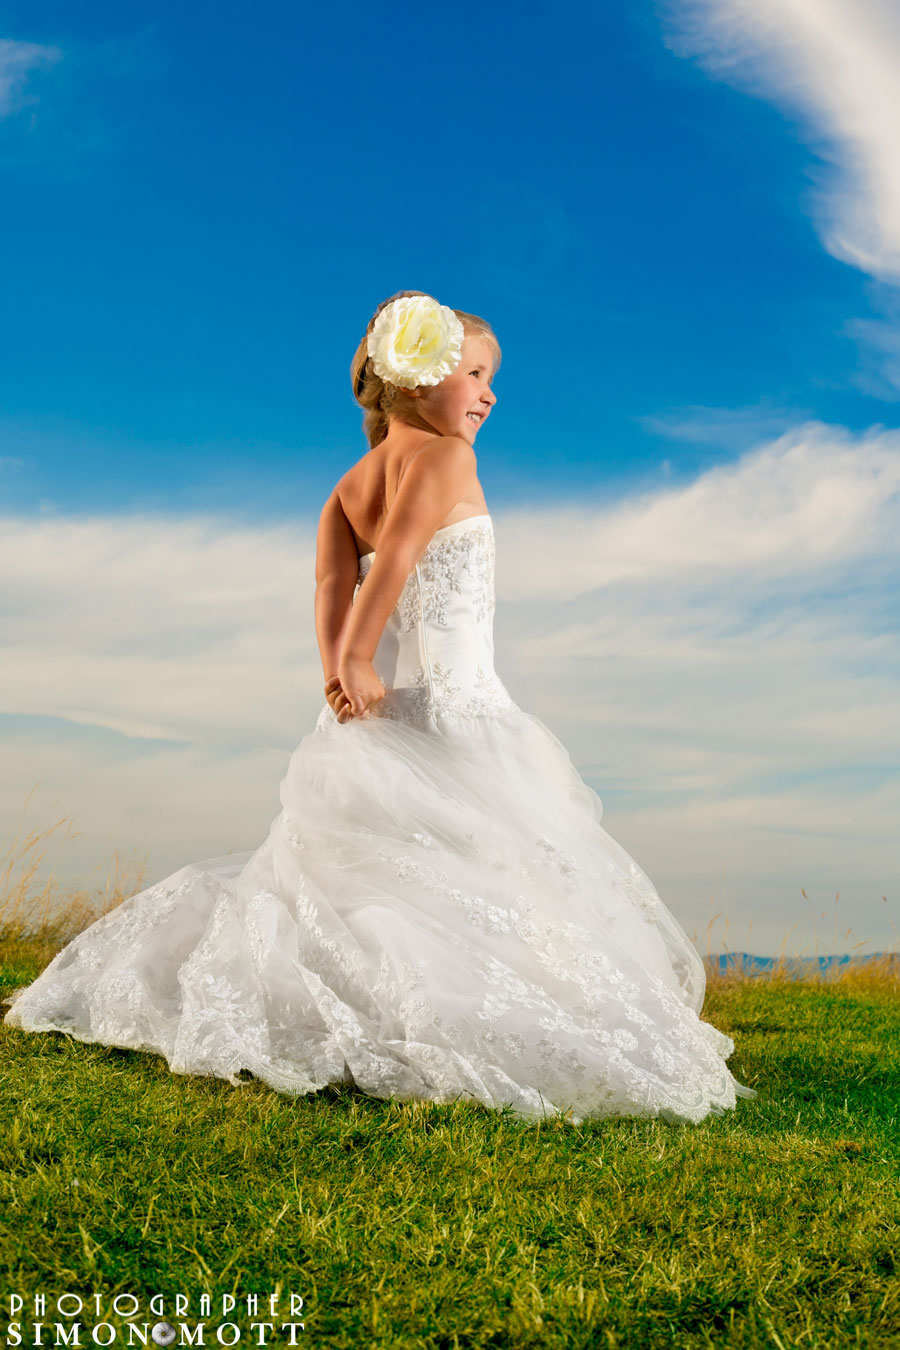 Peyton-wedding-dress-2-watermark.jpg